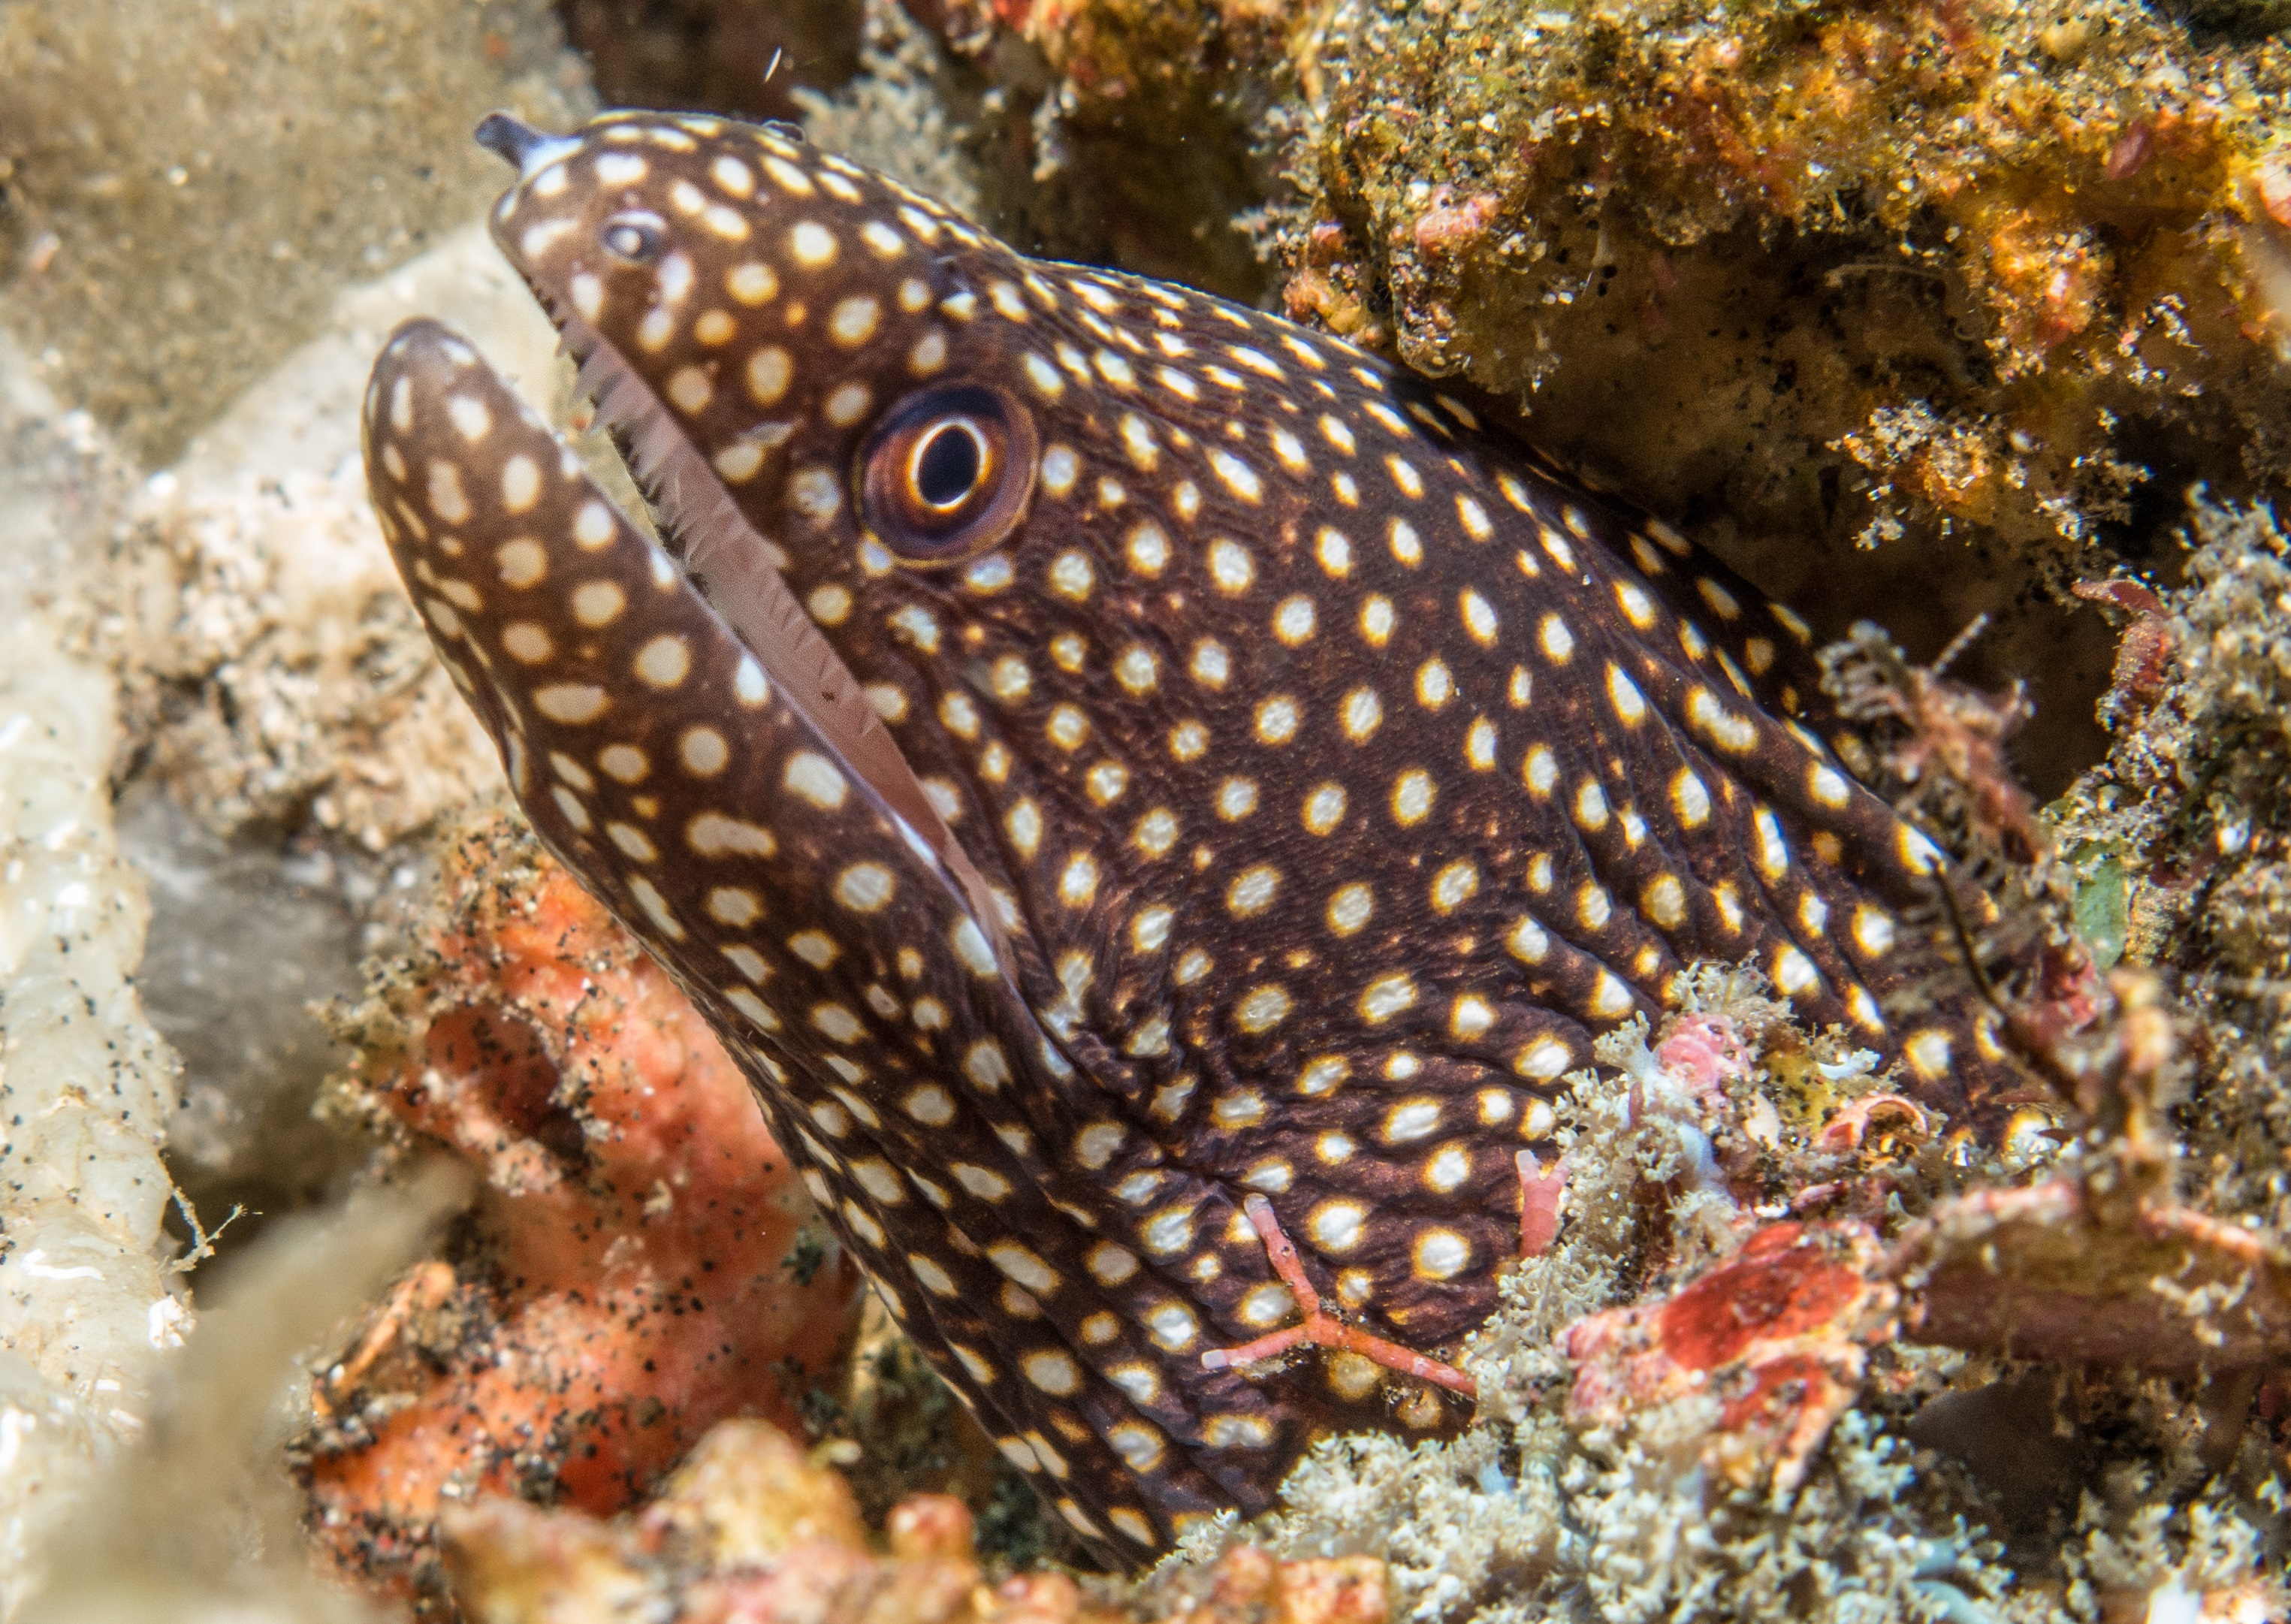 Moray eel at dive site Turtle Point